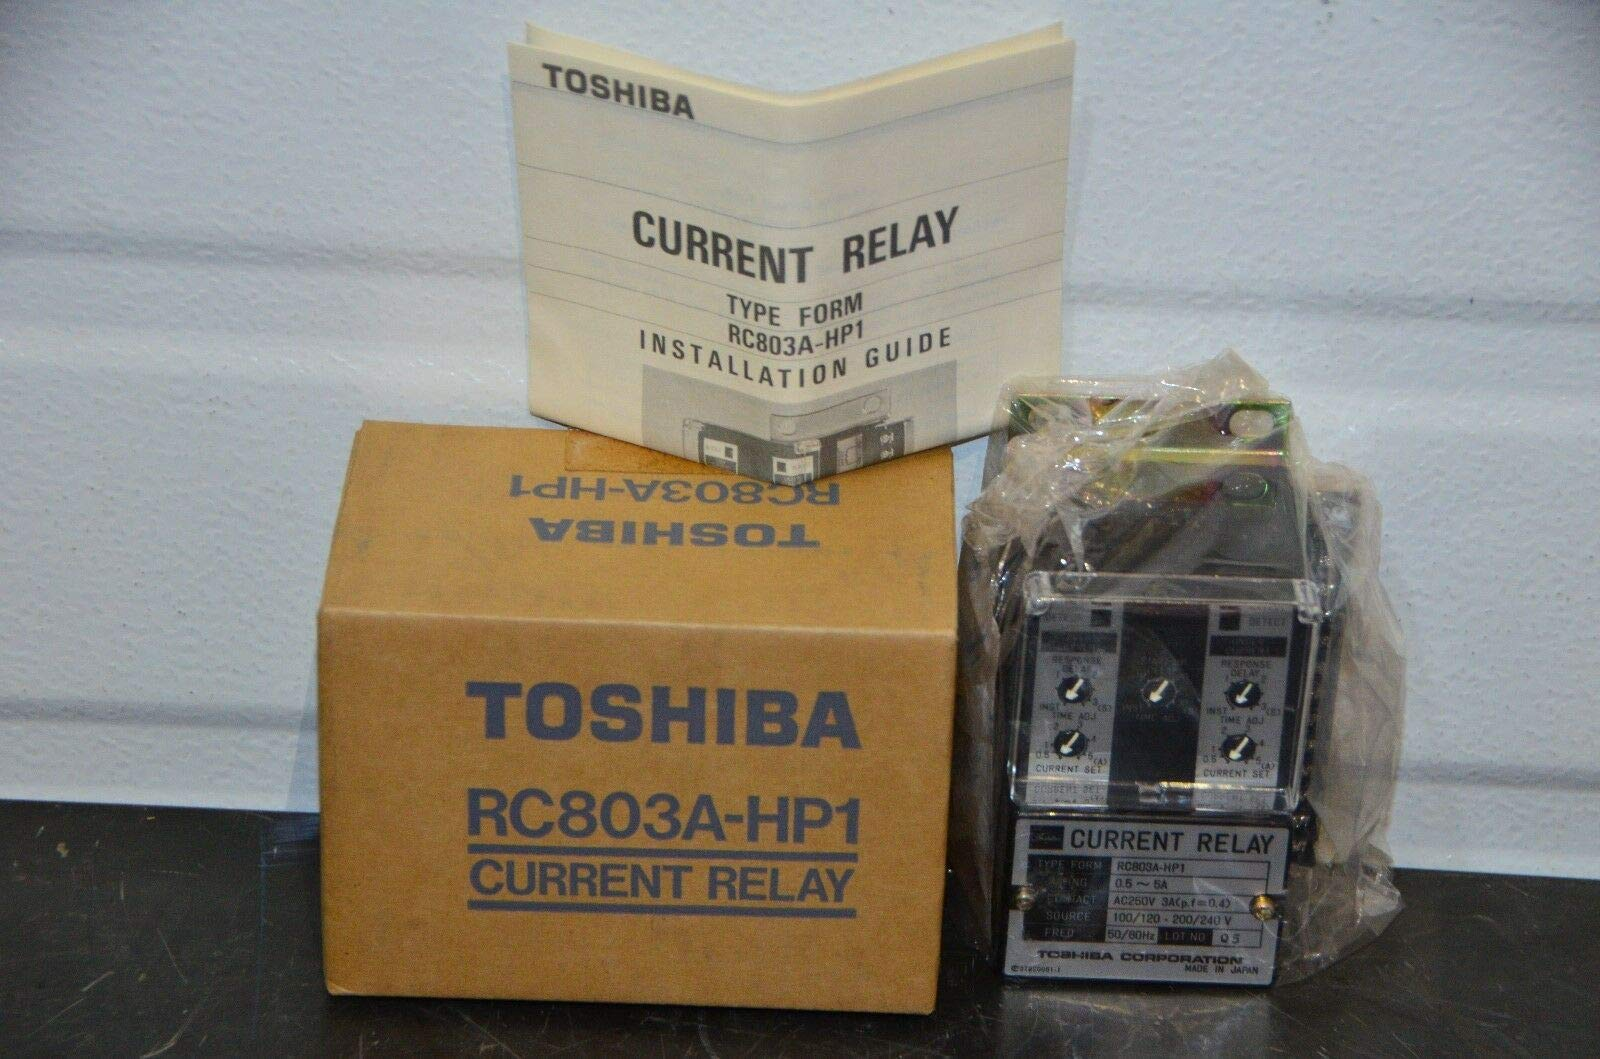 labtechsales Toshiba RC803A-HP1 Current Relay Overcurrent/Undercurrent Protection 0.5-5A